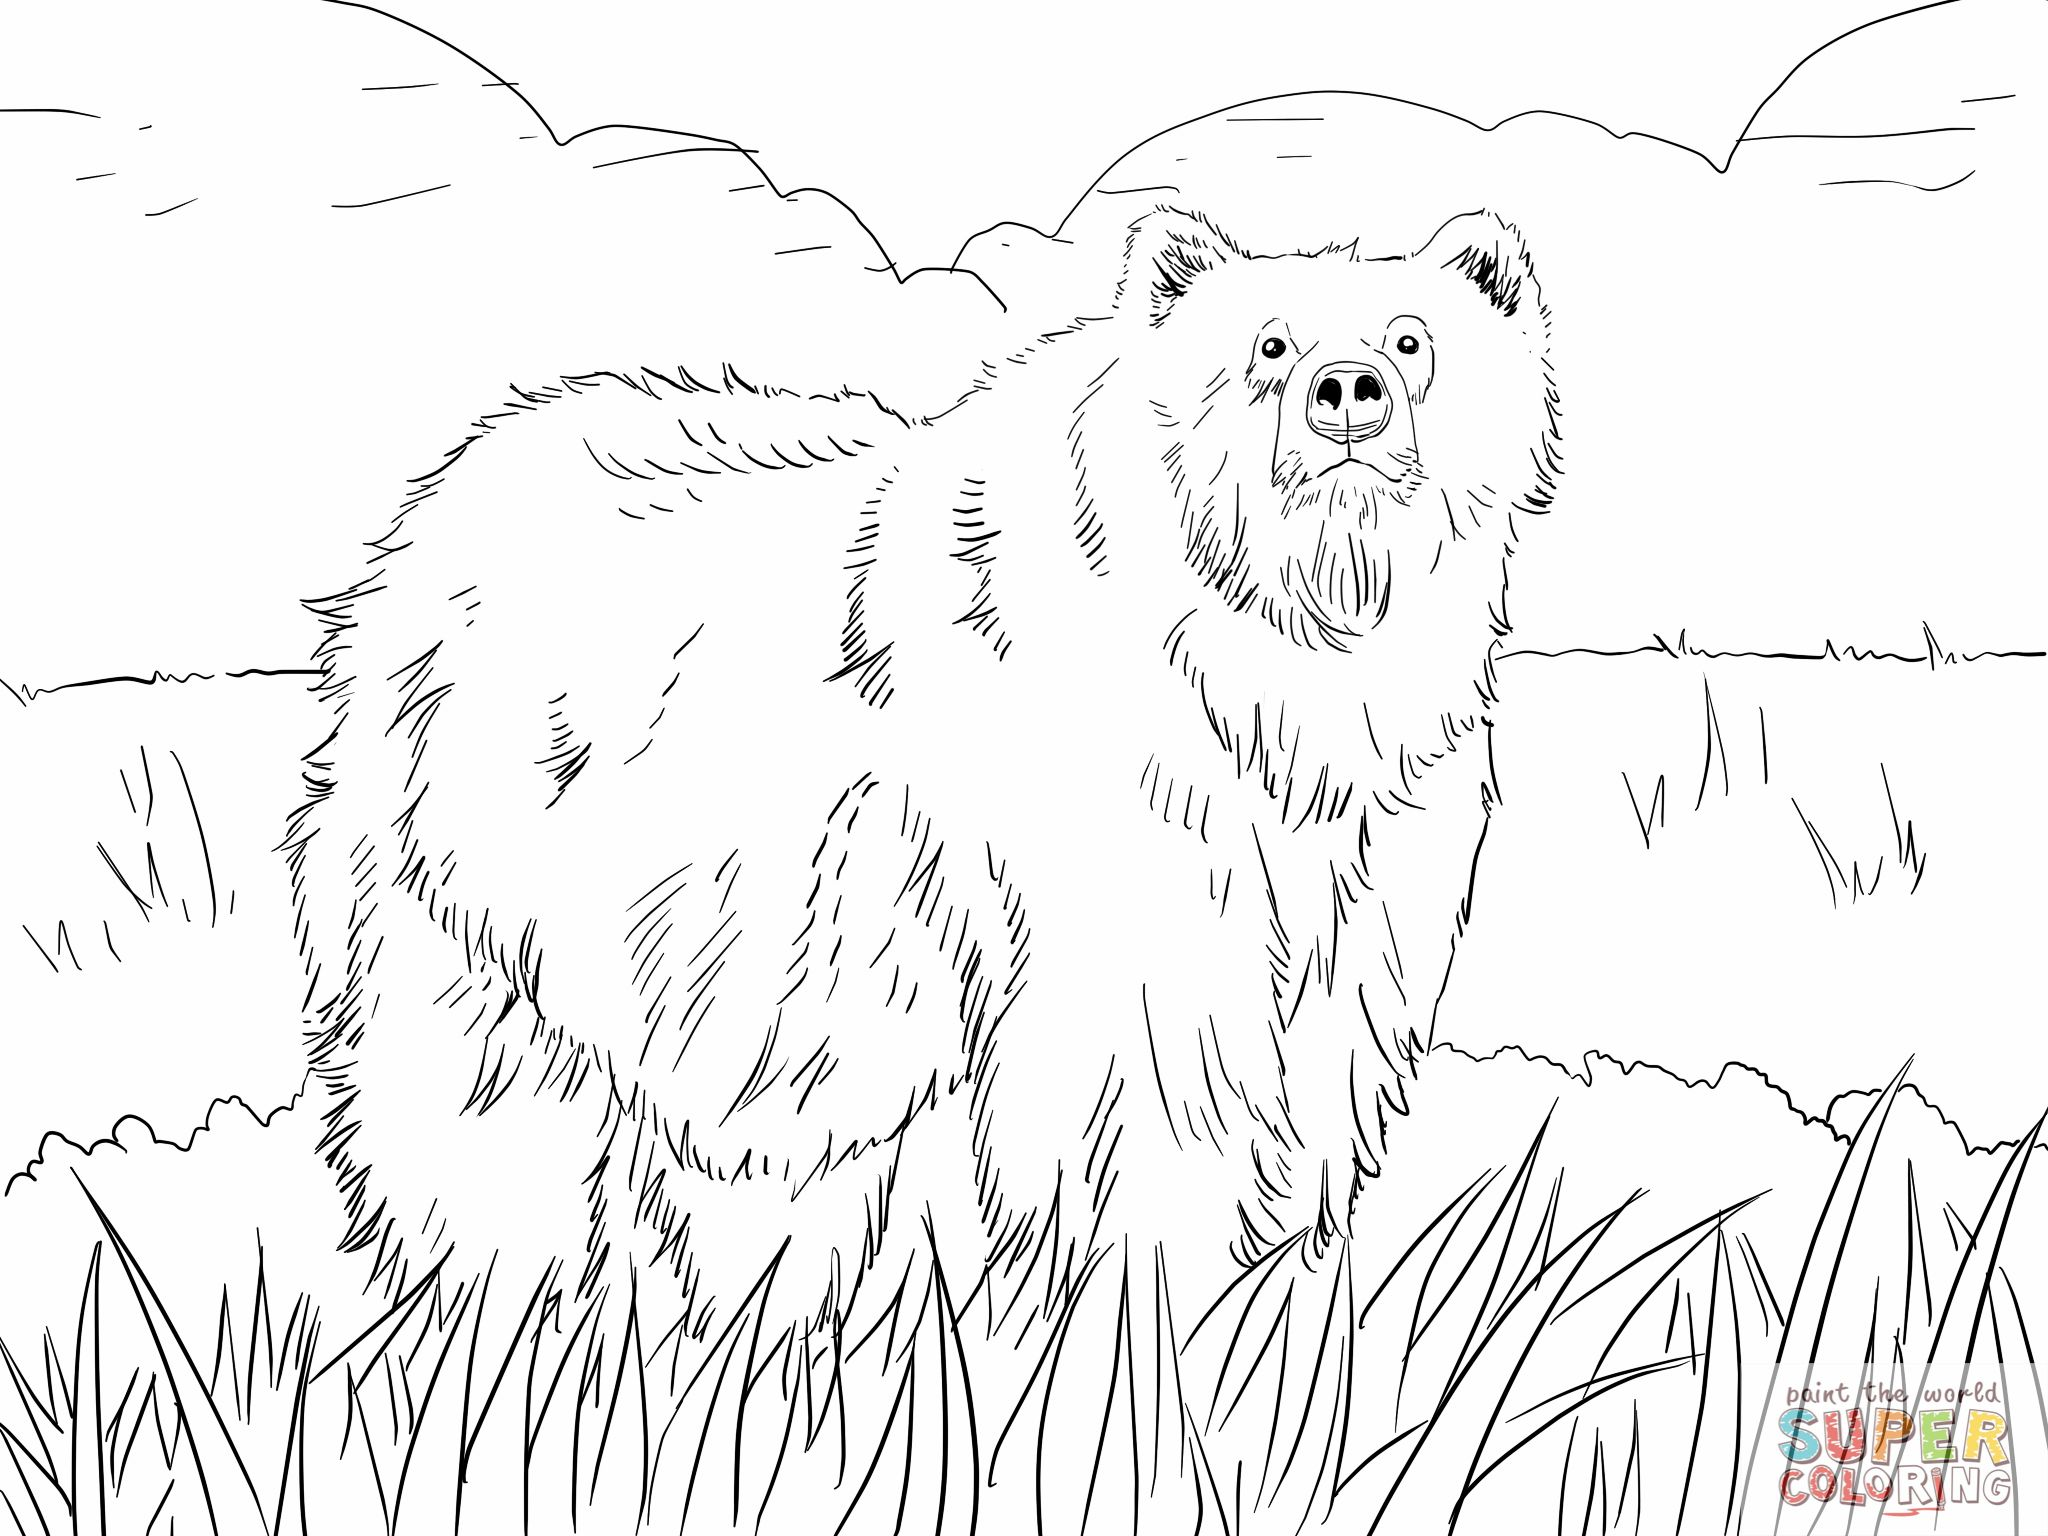 Alaskan Grizzly Bear Coloring Online Super Coloring Bear Coloring Pages Animal Coloring Pages Polar Bear Coloring Page